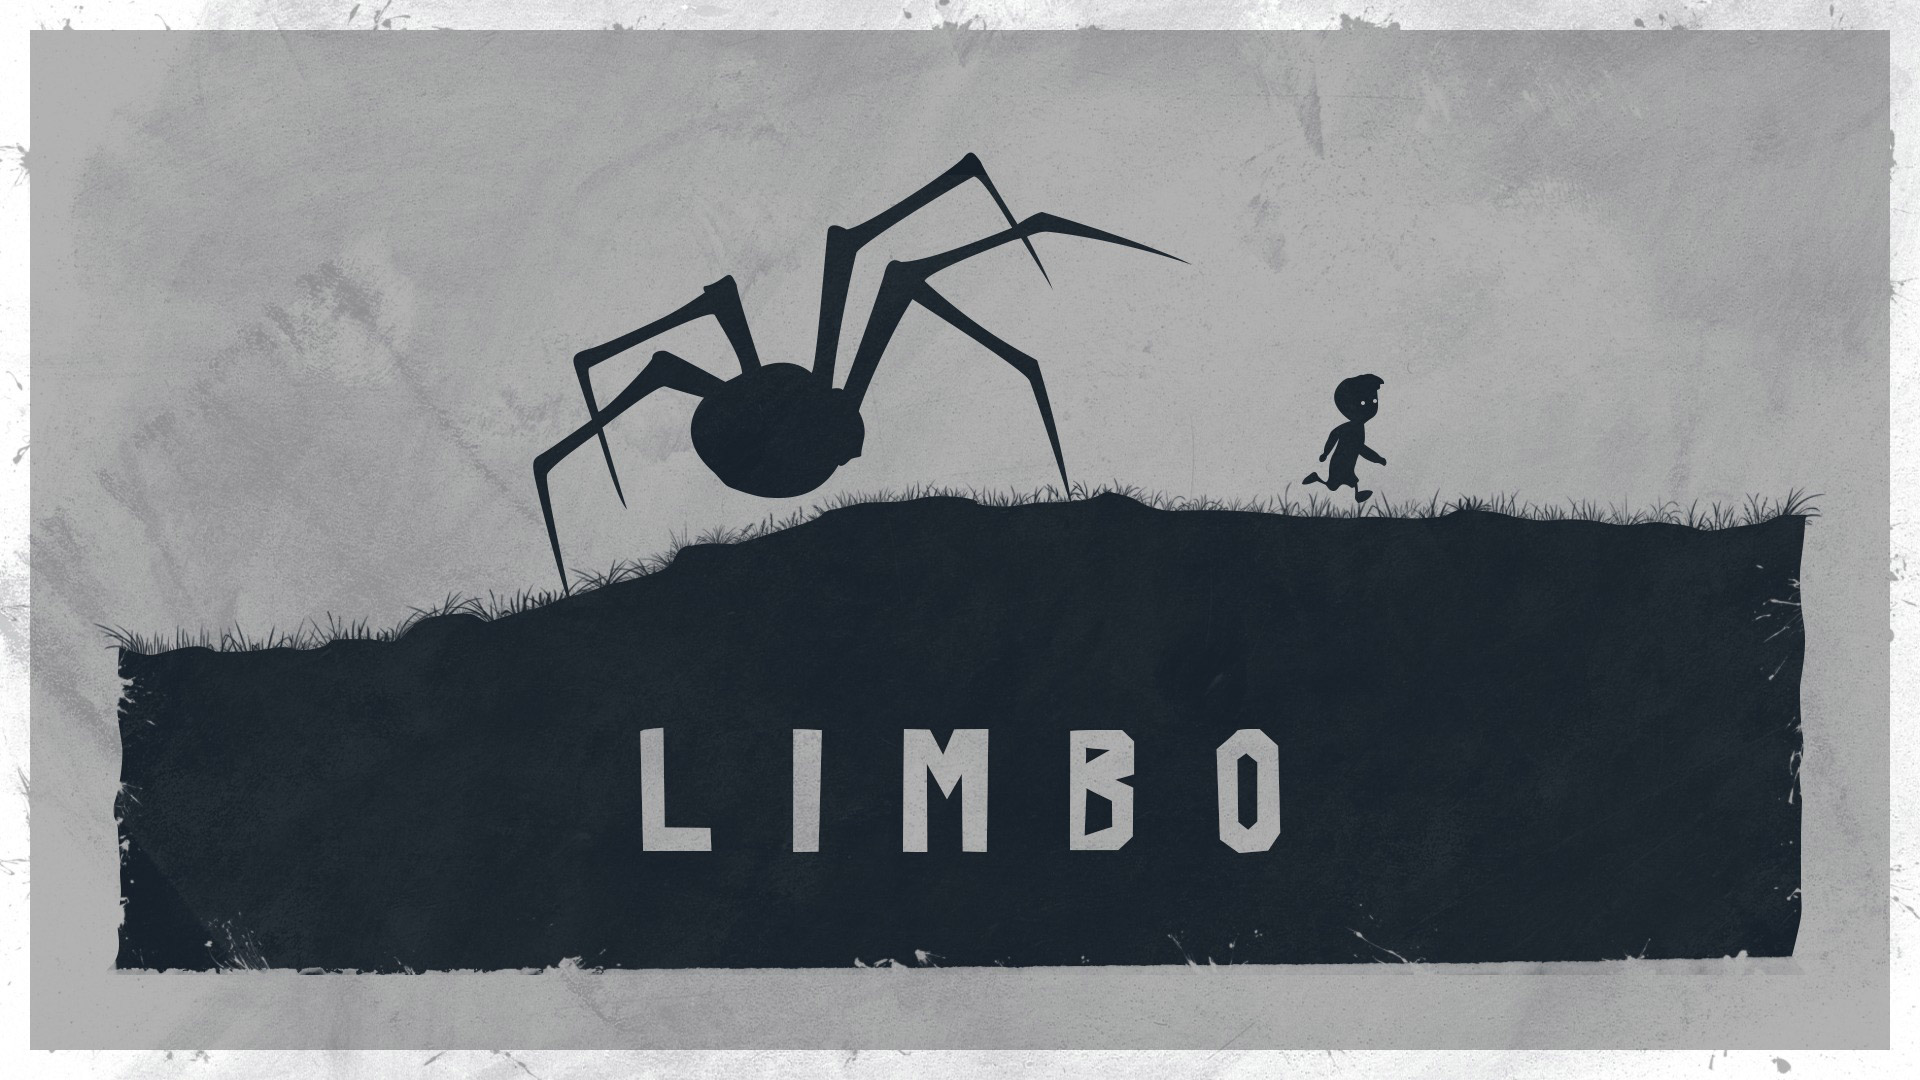 Free Limbo Wallpaper in 1920x1080